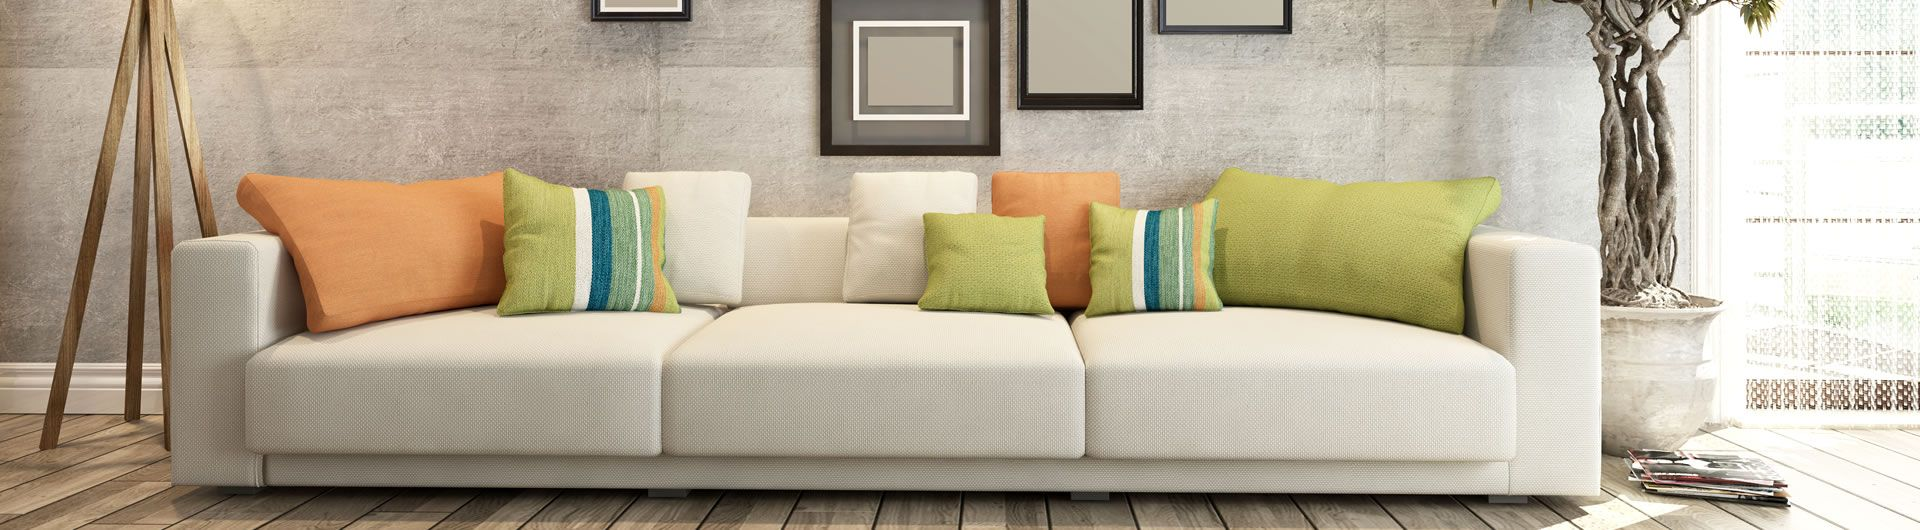 Indoor wide sofa with coloured cushions